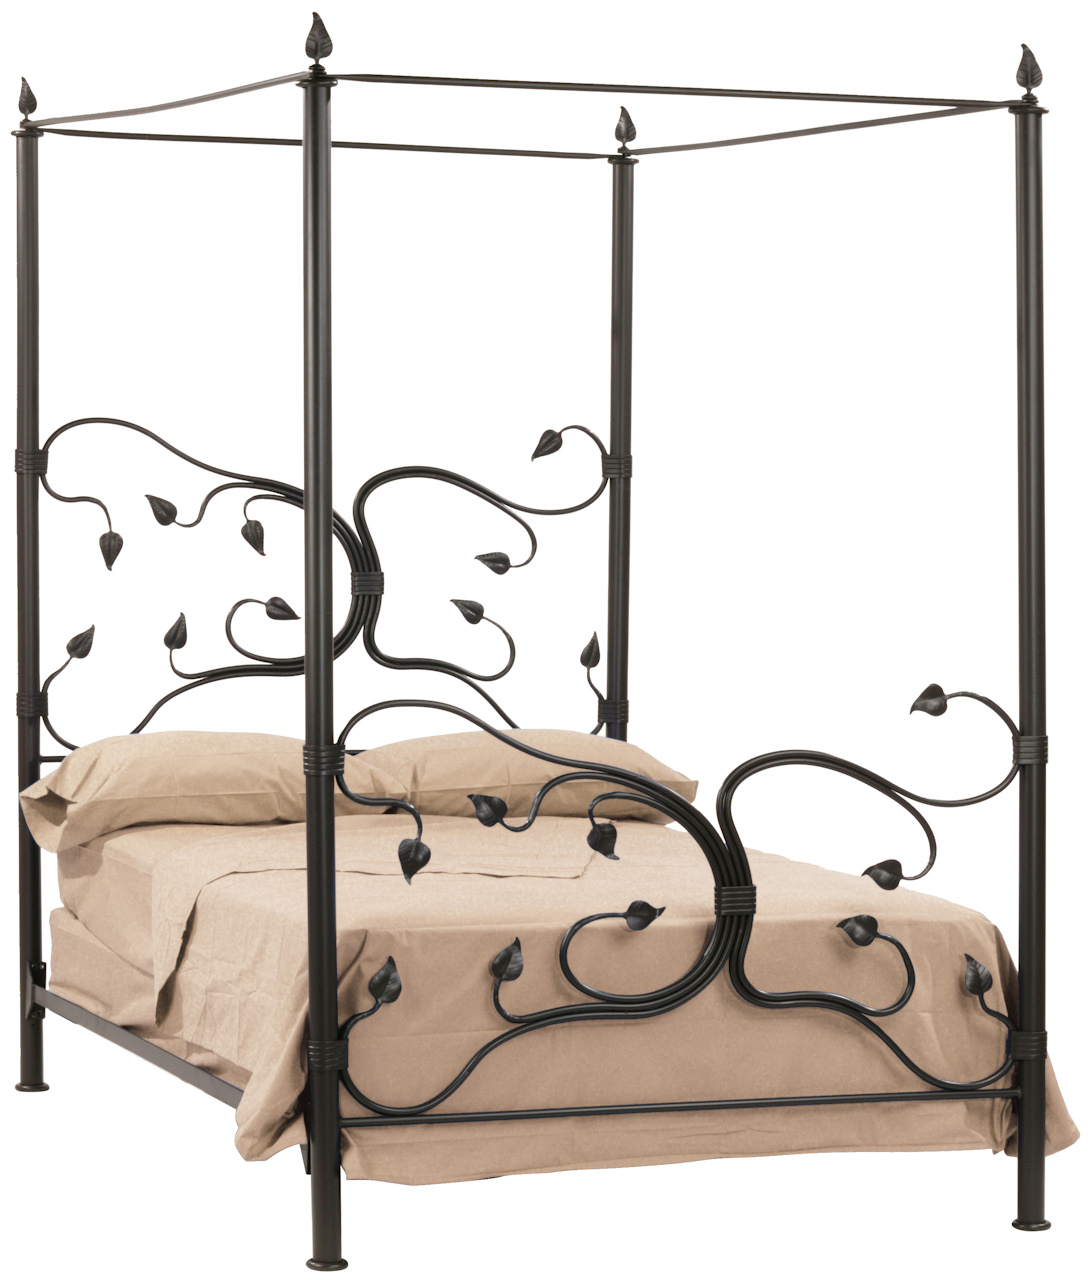 - Eden Isle Hand Forged Iron Canopy Bed King Complete